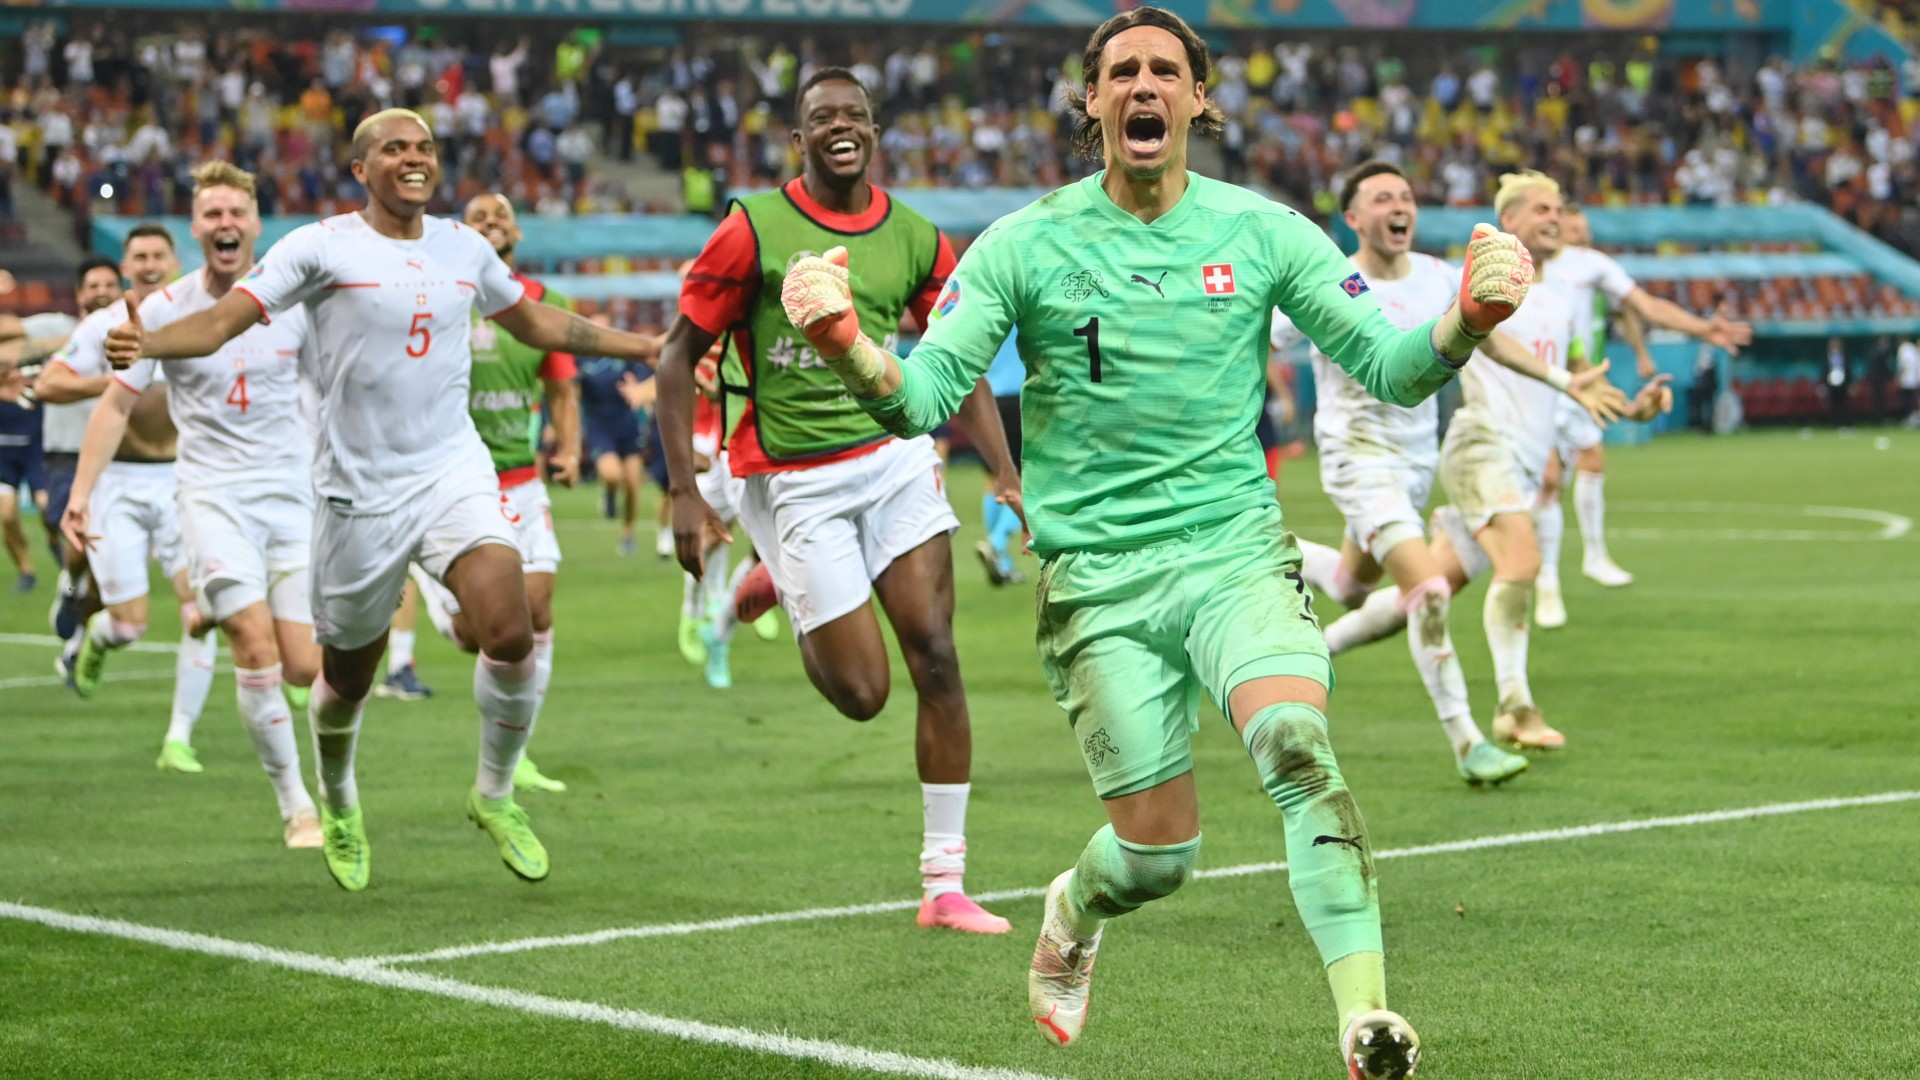 Euro 2021 Round of 16: Matches, schedule, times, TV for knockout round